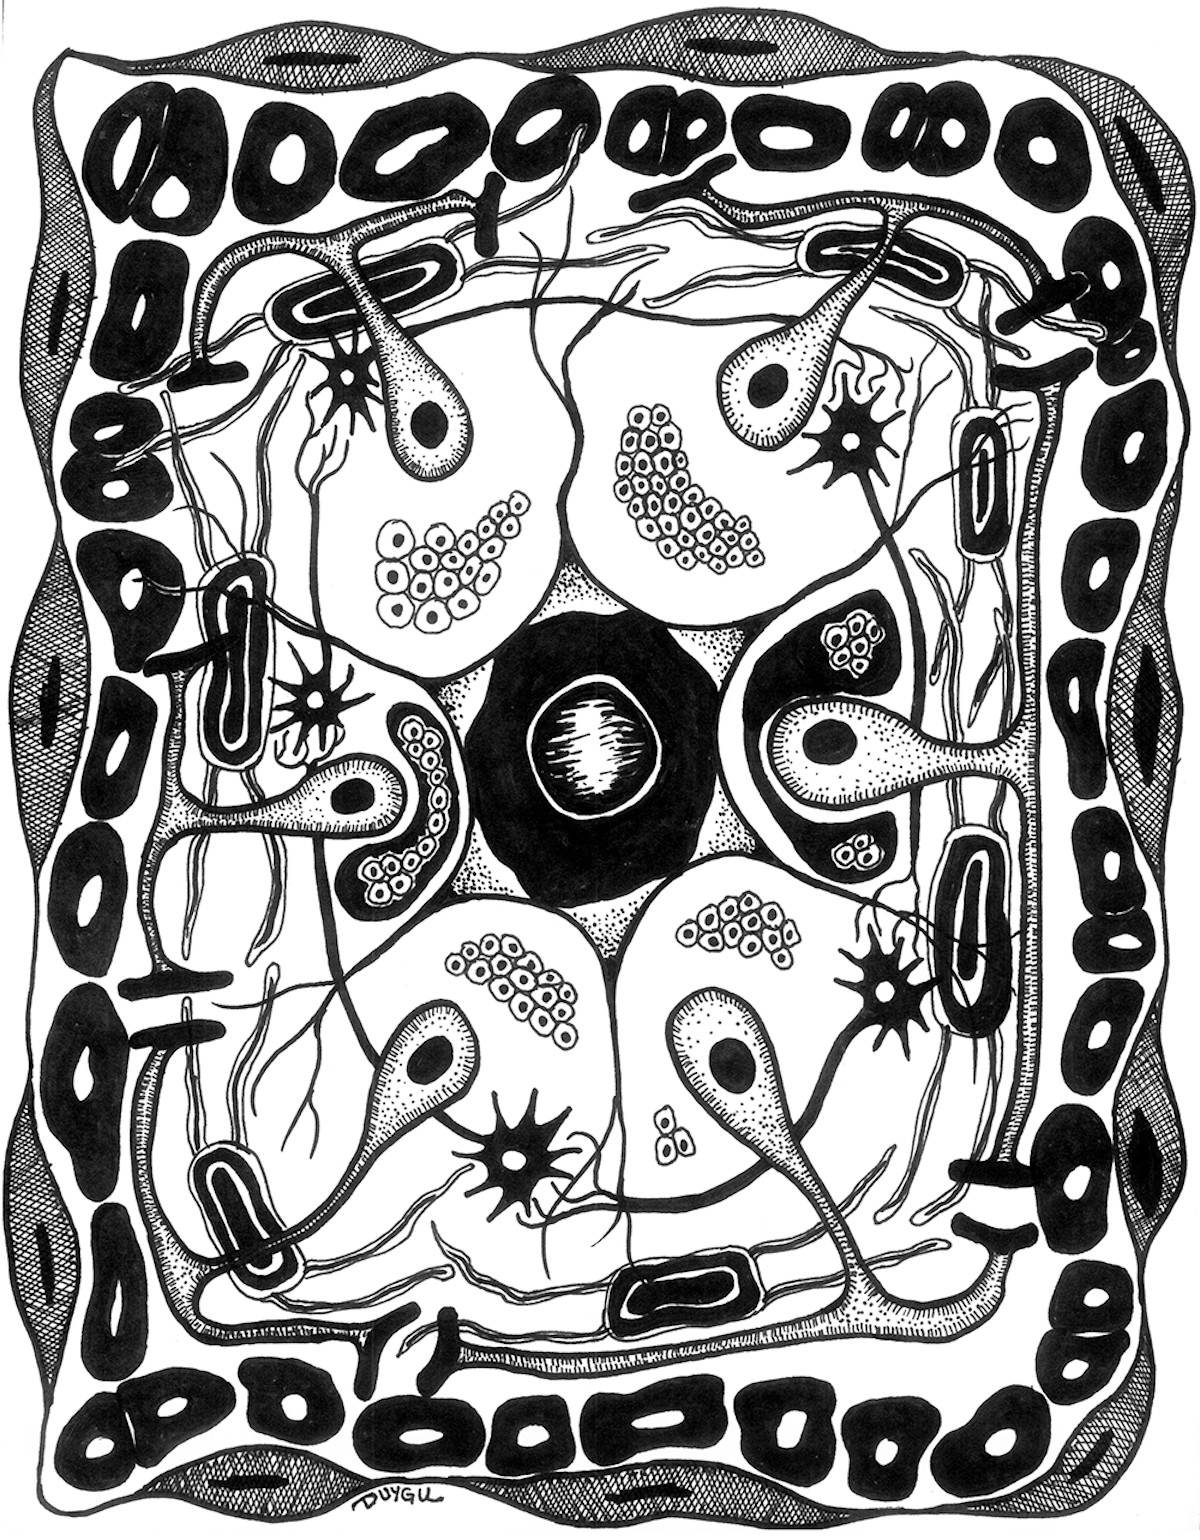 Black and white illustration of rectangle containing organic, cell-like shapes